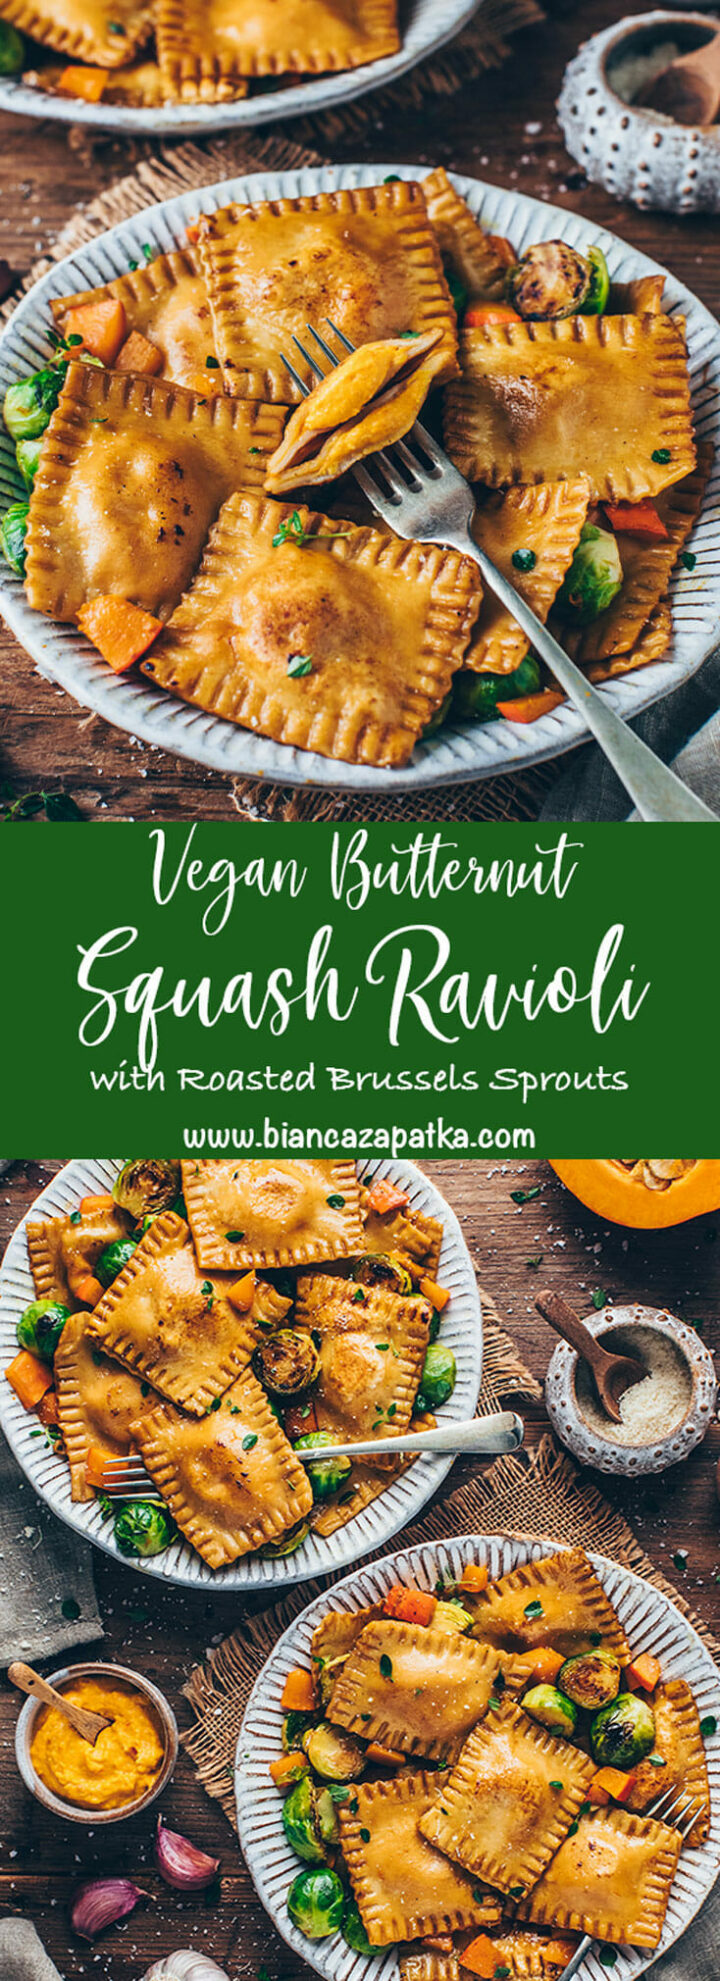 Butternut Squash Ravioli with garlic sage brown butter and roasted Brussels sprouts